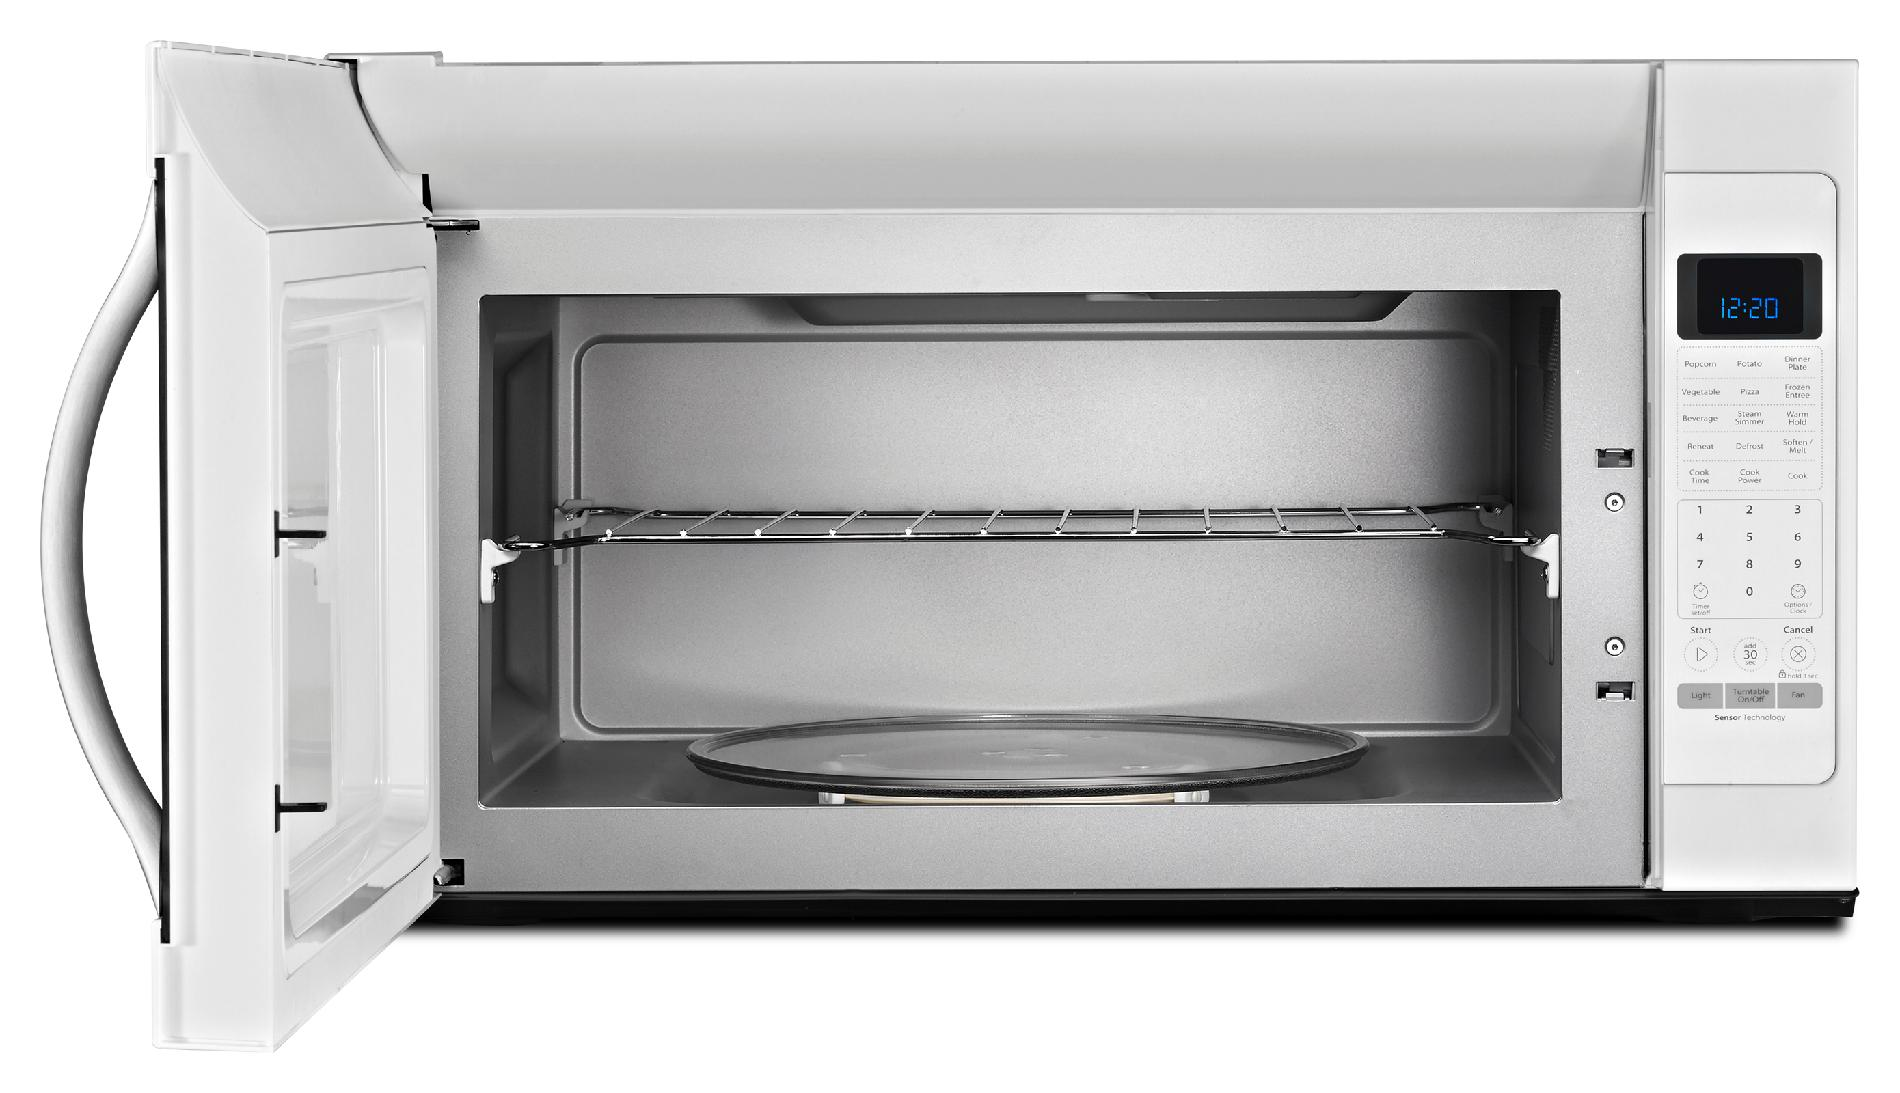 Whirlpool WMH53520CH 2.0 cu. ft. Over-the-Range Microwave w/ CleanRelease® Non-Stick Interior - White w/Silver Handle